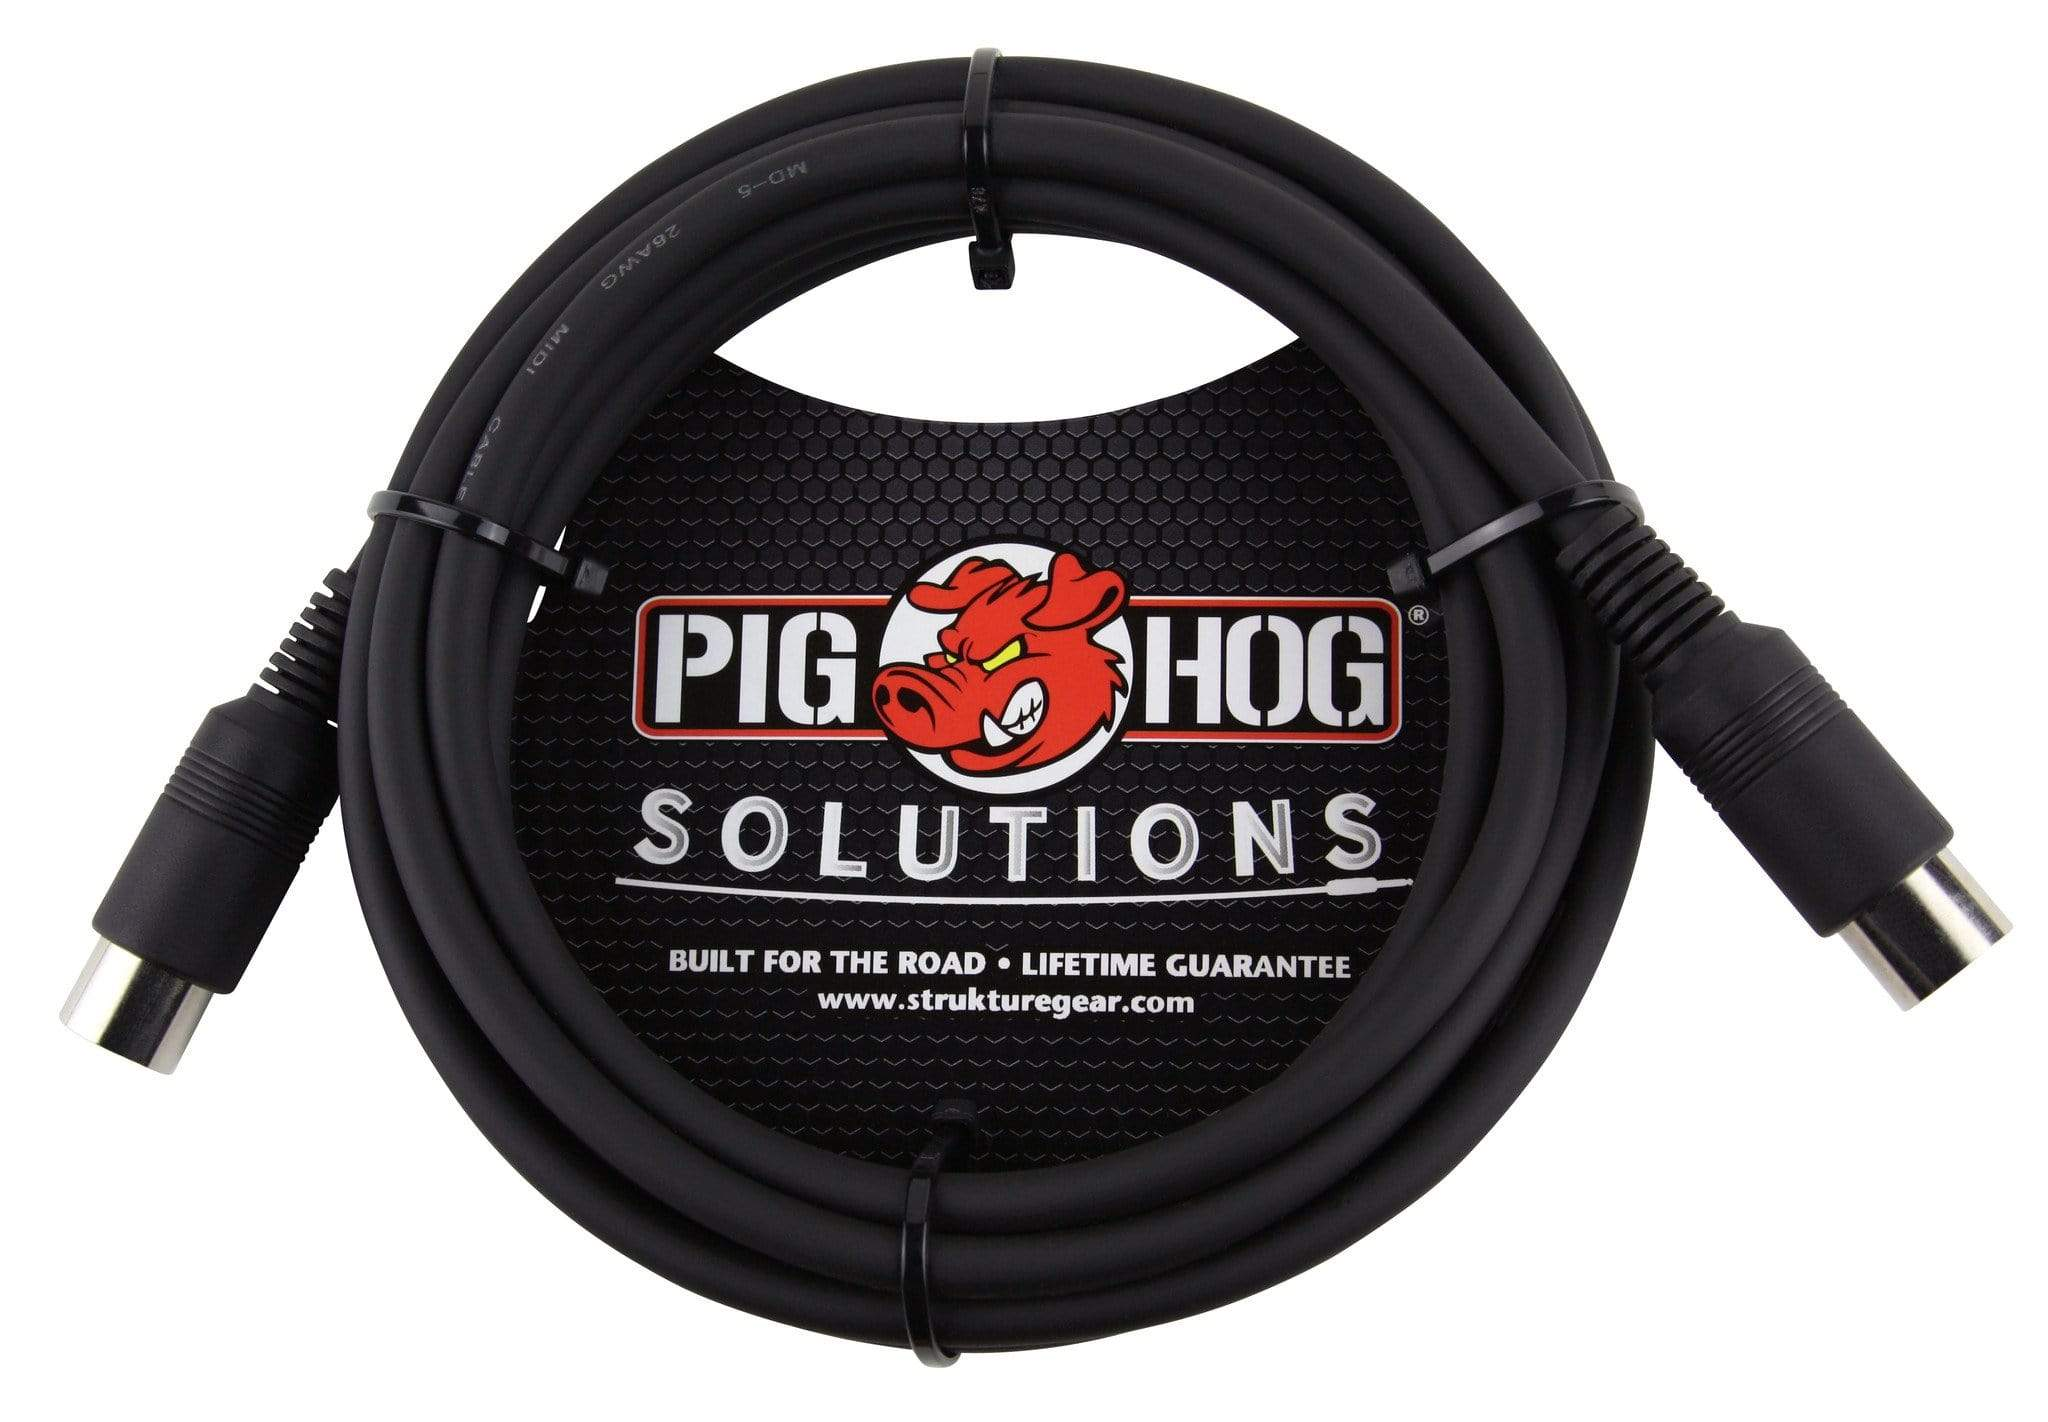 PIG HOG MIDI CABLES Pig Hog 10 ft MIDI Cable Black Instrument Interface PMID10 foot male to male NEW